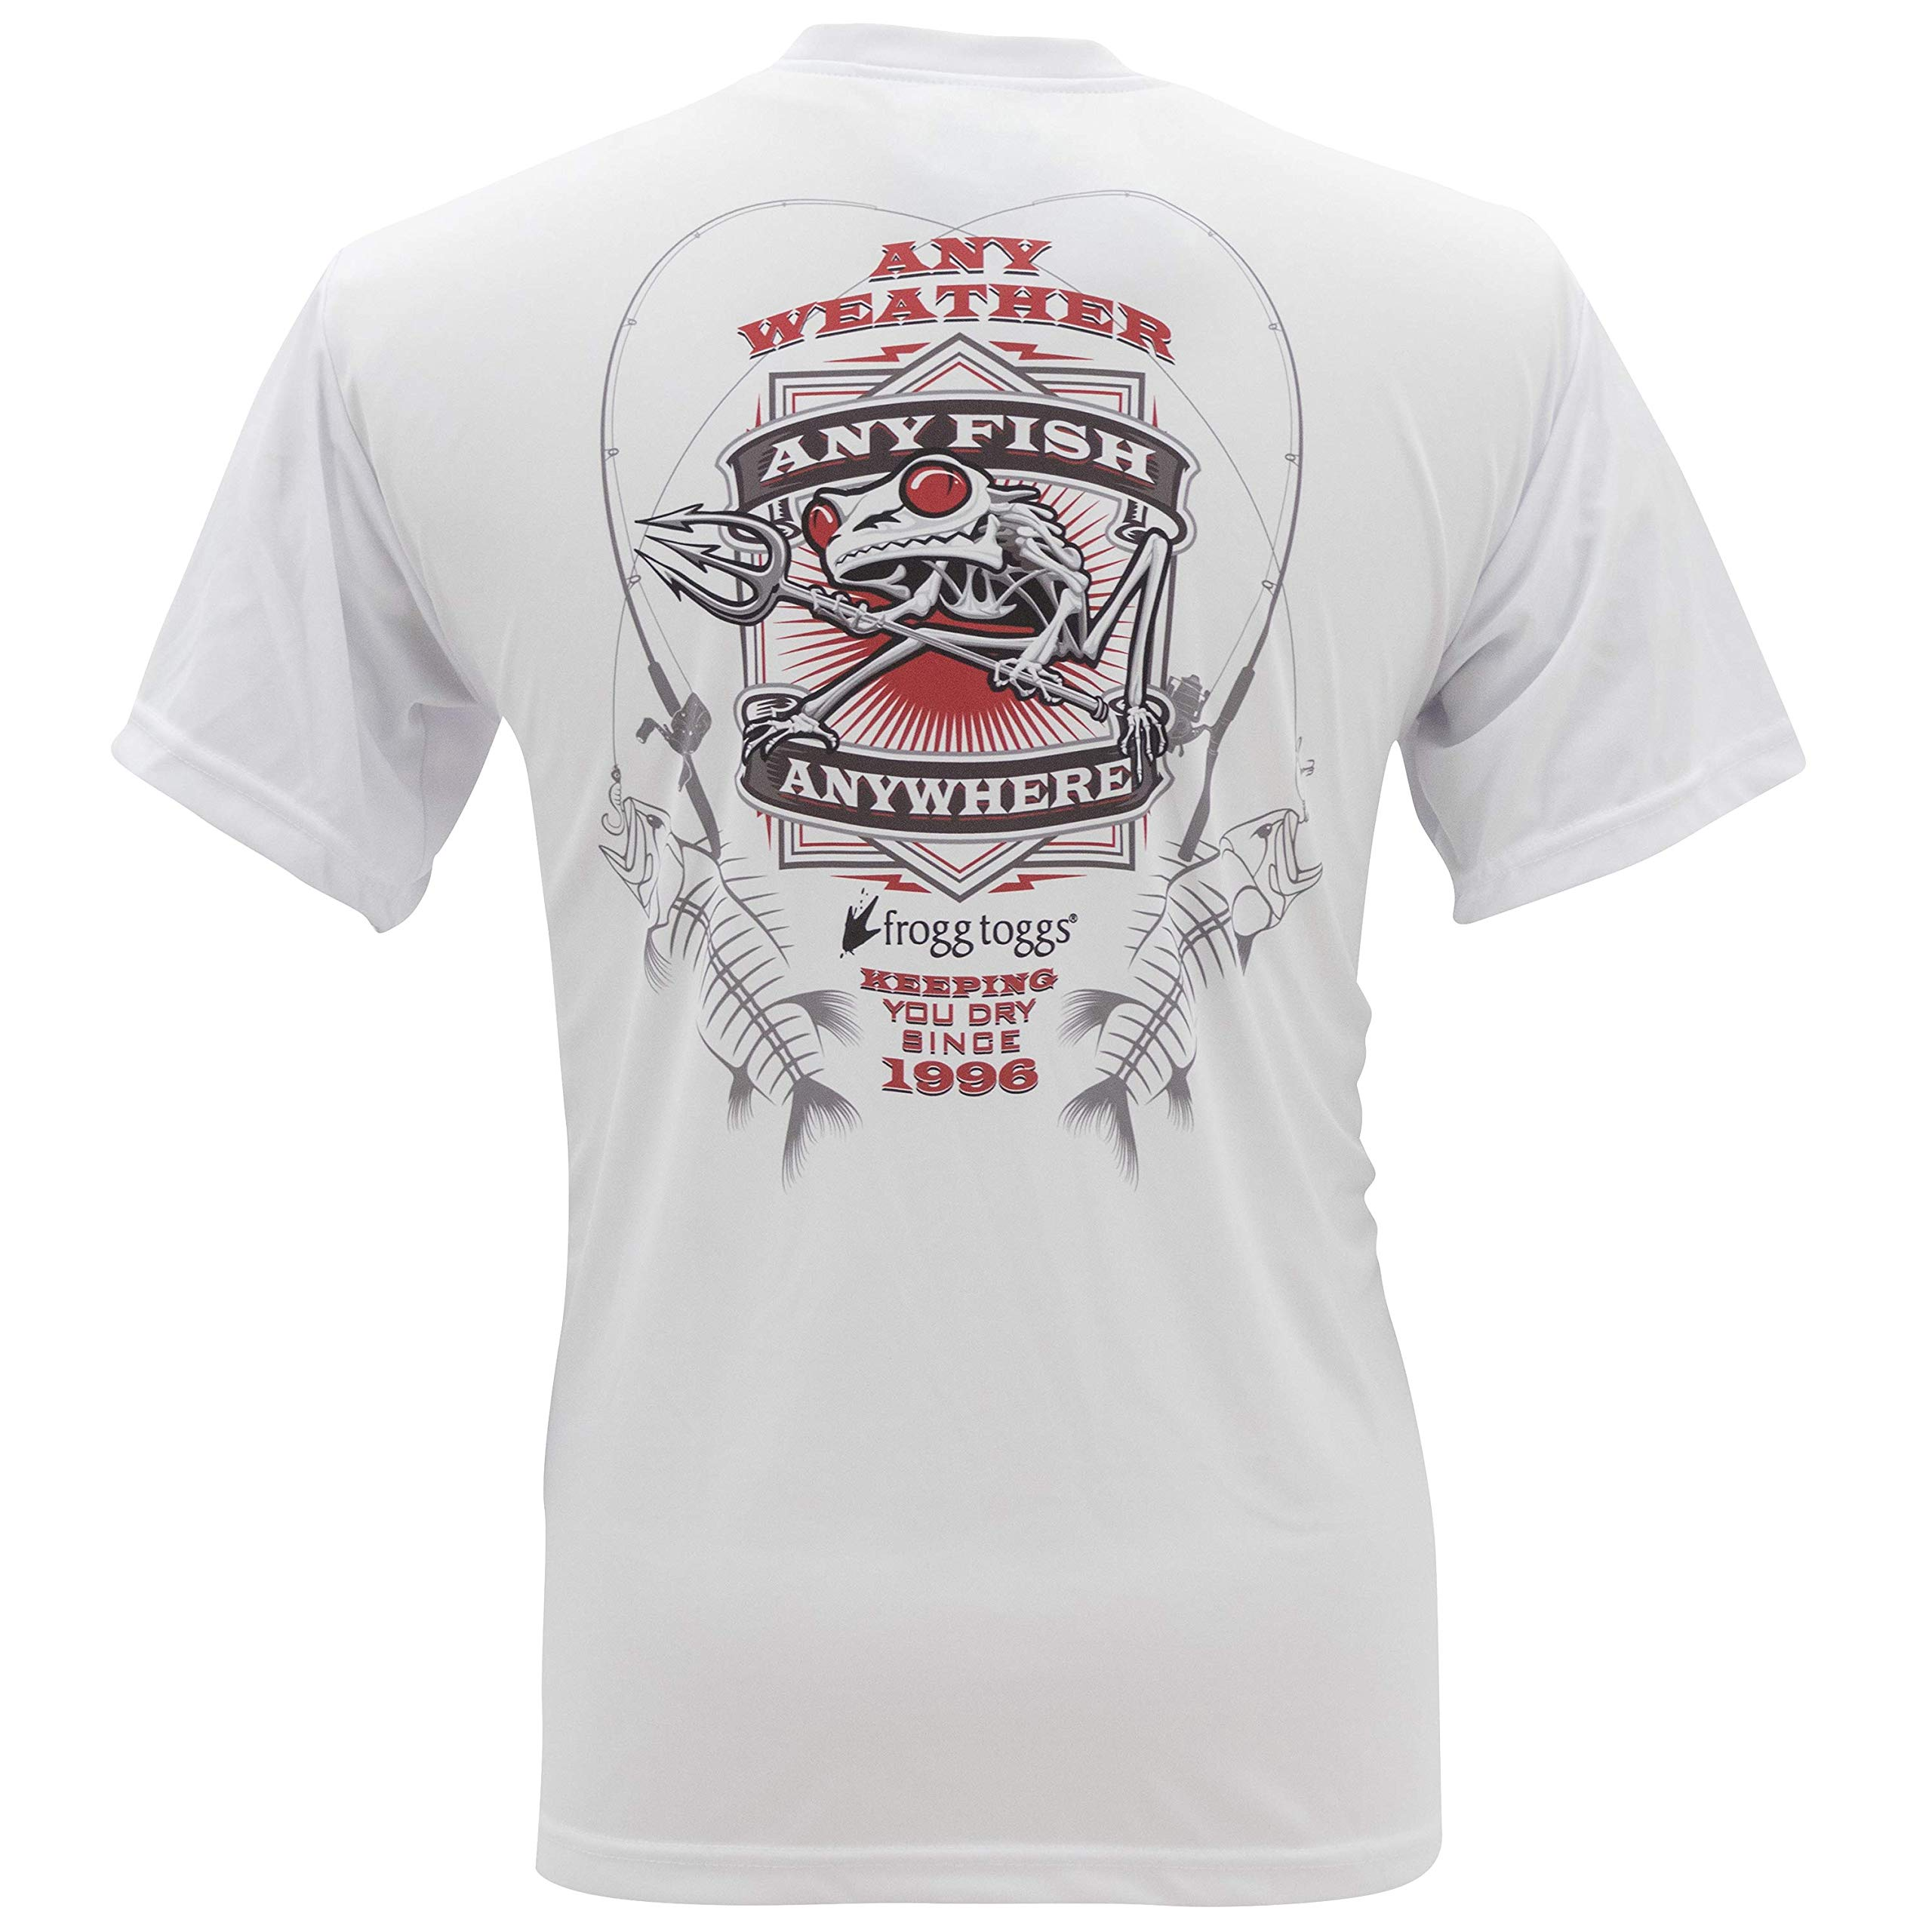 Frogg Toggs FTSSAF-03 Any Fish, Anywhere Short Sleeve Performance Shirt, White with Red Logo, Large